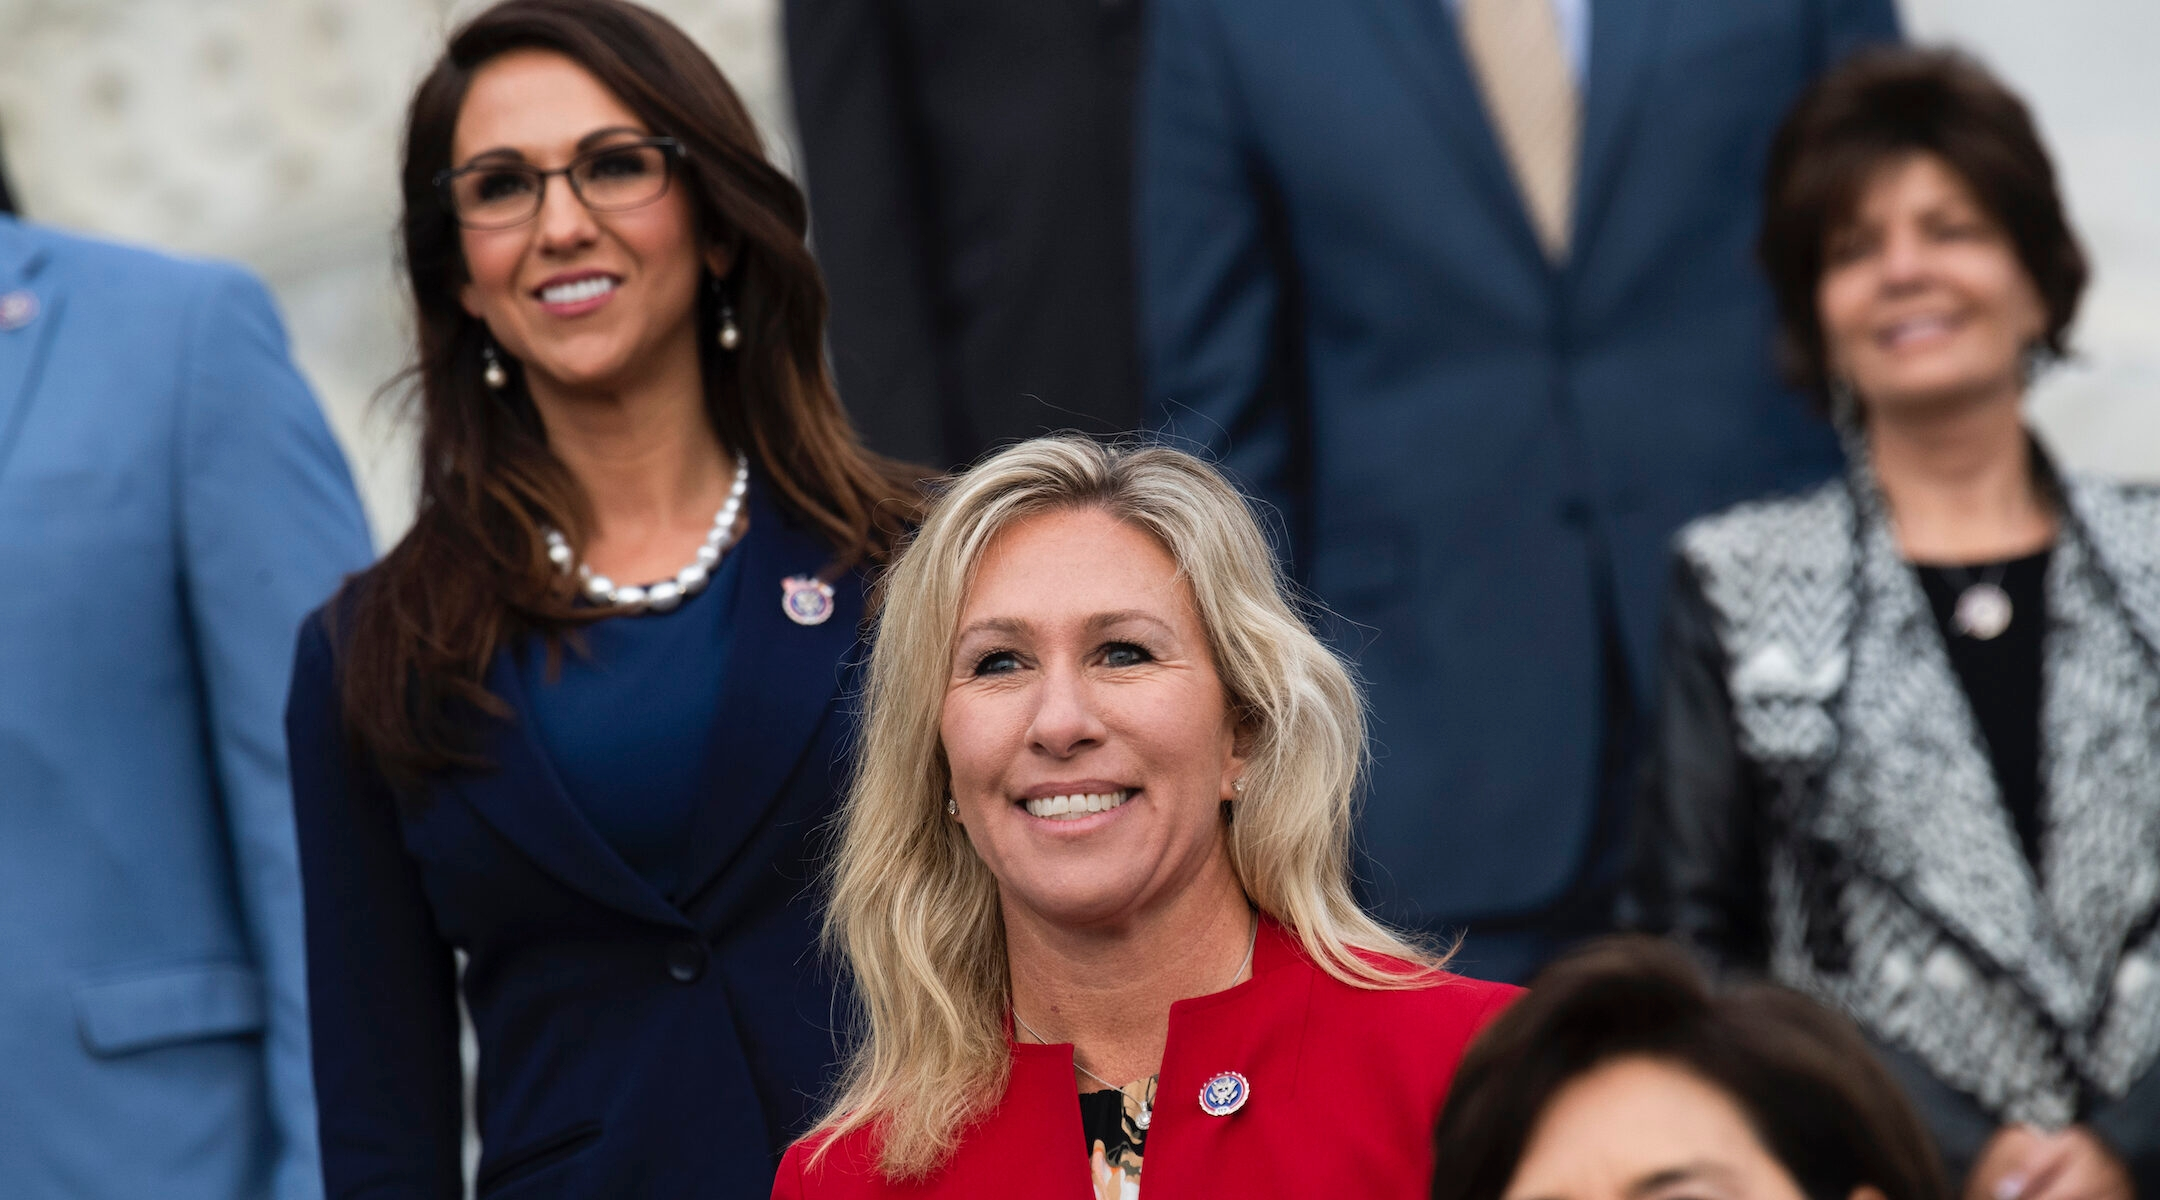 Reps. Marjorie Taylor Greene, R-Ga., and Lauren Boebert, R-Colo., left, are seen during a group photo with freshmen members of the House Republican Conference in Washington, D.C., on January 4, 2021. (Tom Williams/CQ-Roll Call, Inc via Getty Images)